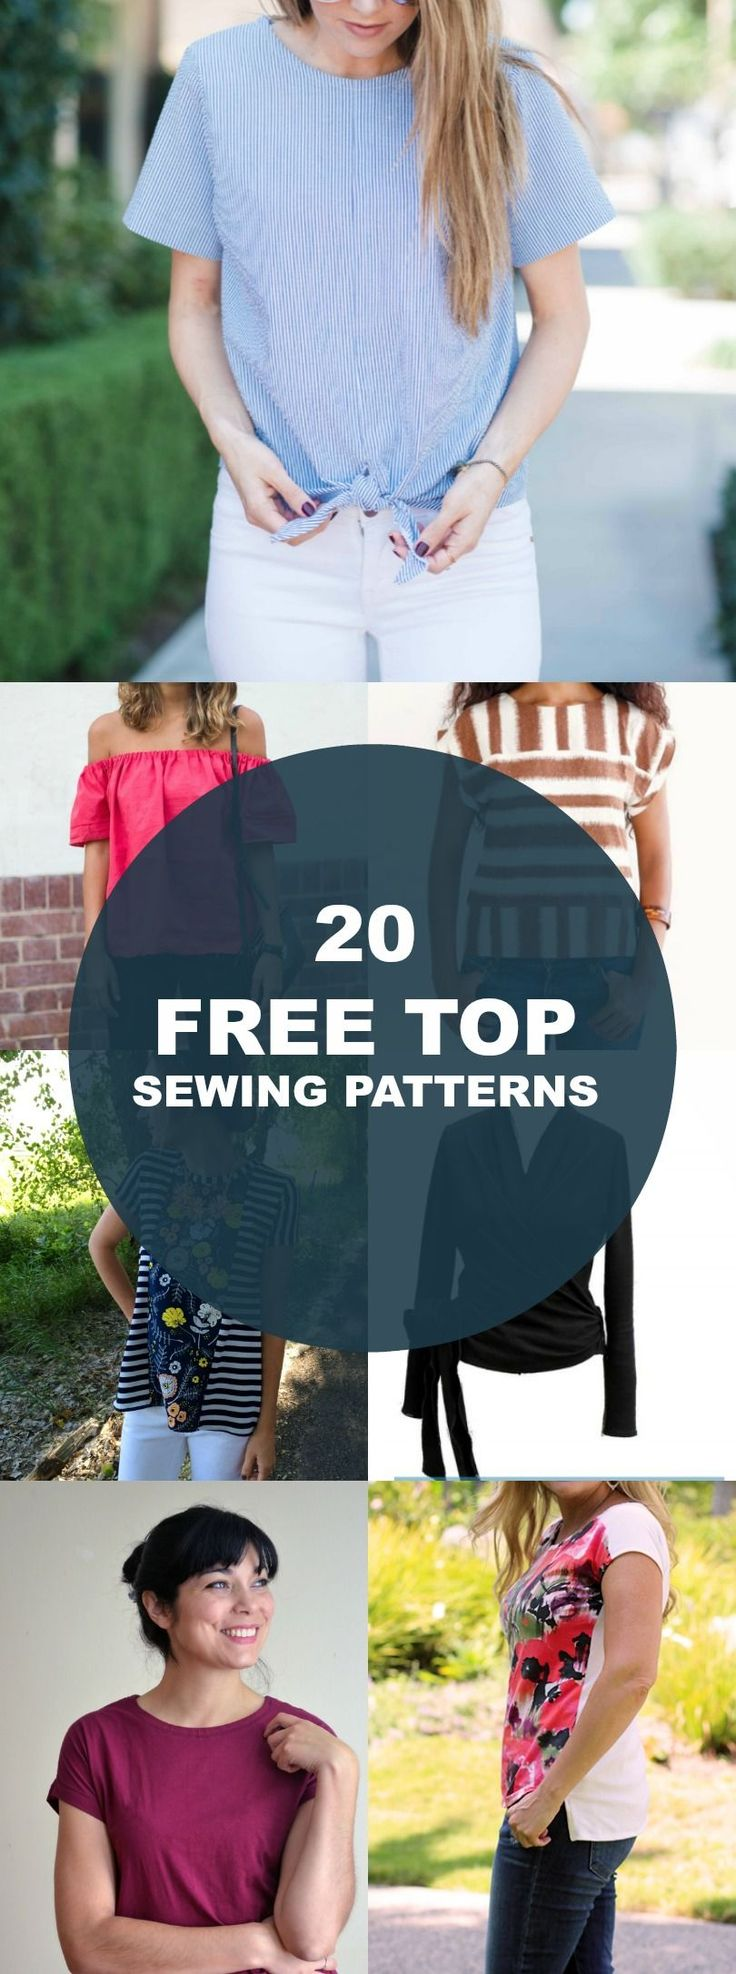 Free Sewing Patterns: 20 spring and summer tops and t-shirt tutorials: Get access to beautiful tops sewing patterns and tutorials. Learn more here--